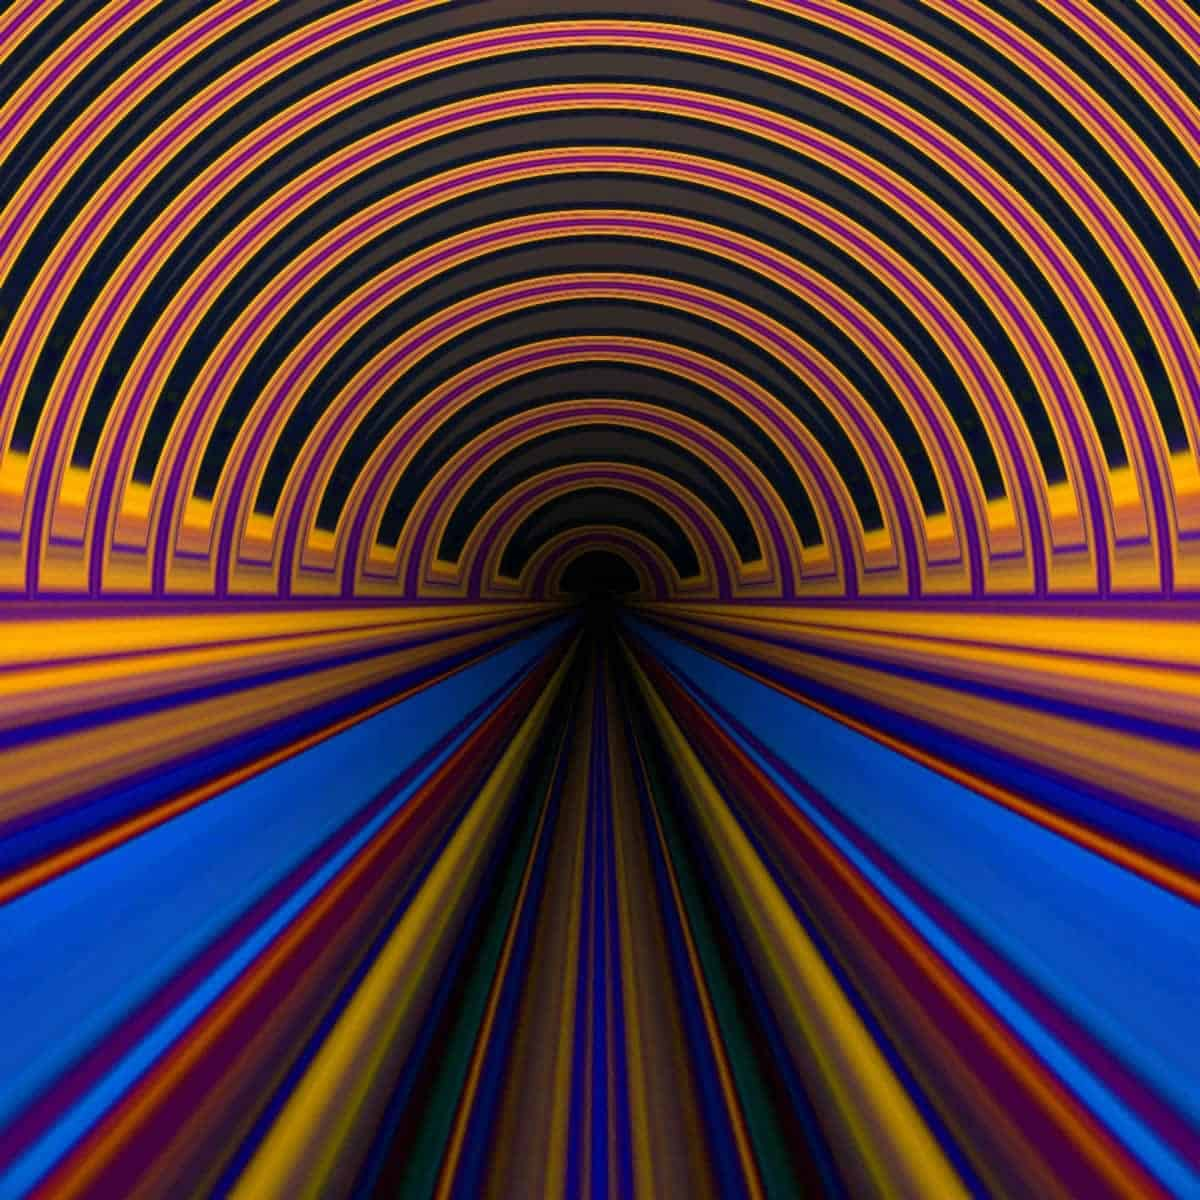 An image of a piece of art in which bright colors depict the shape of a tunnel.